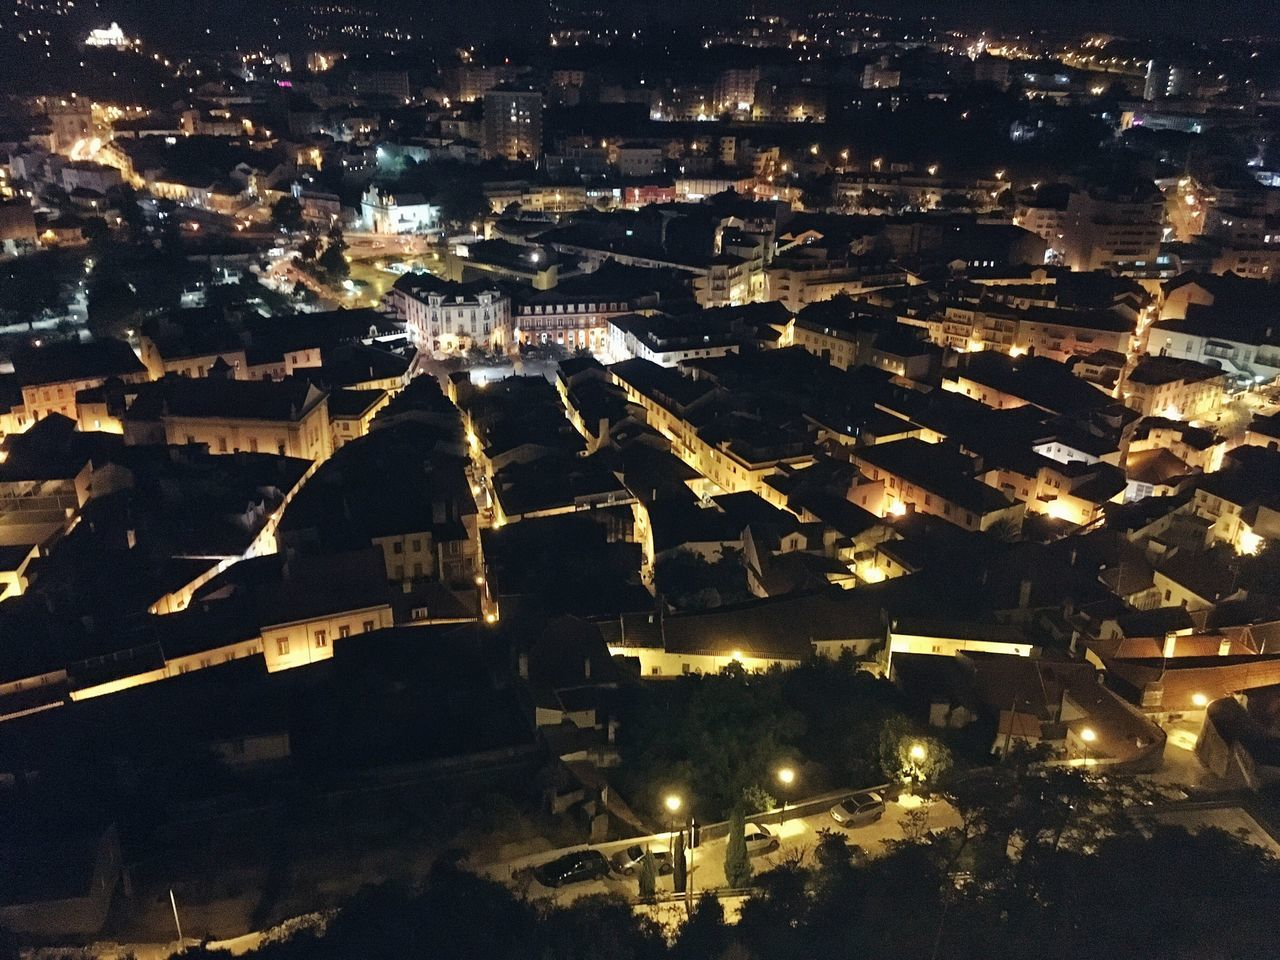 A Bird's Eye View Illuminated Night Cityscape City Residential District Building Exterior Leiria Portugal